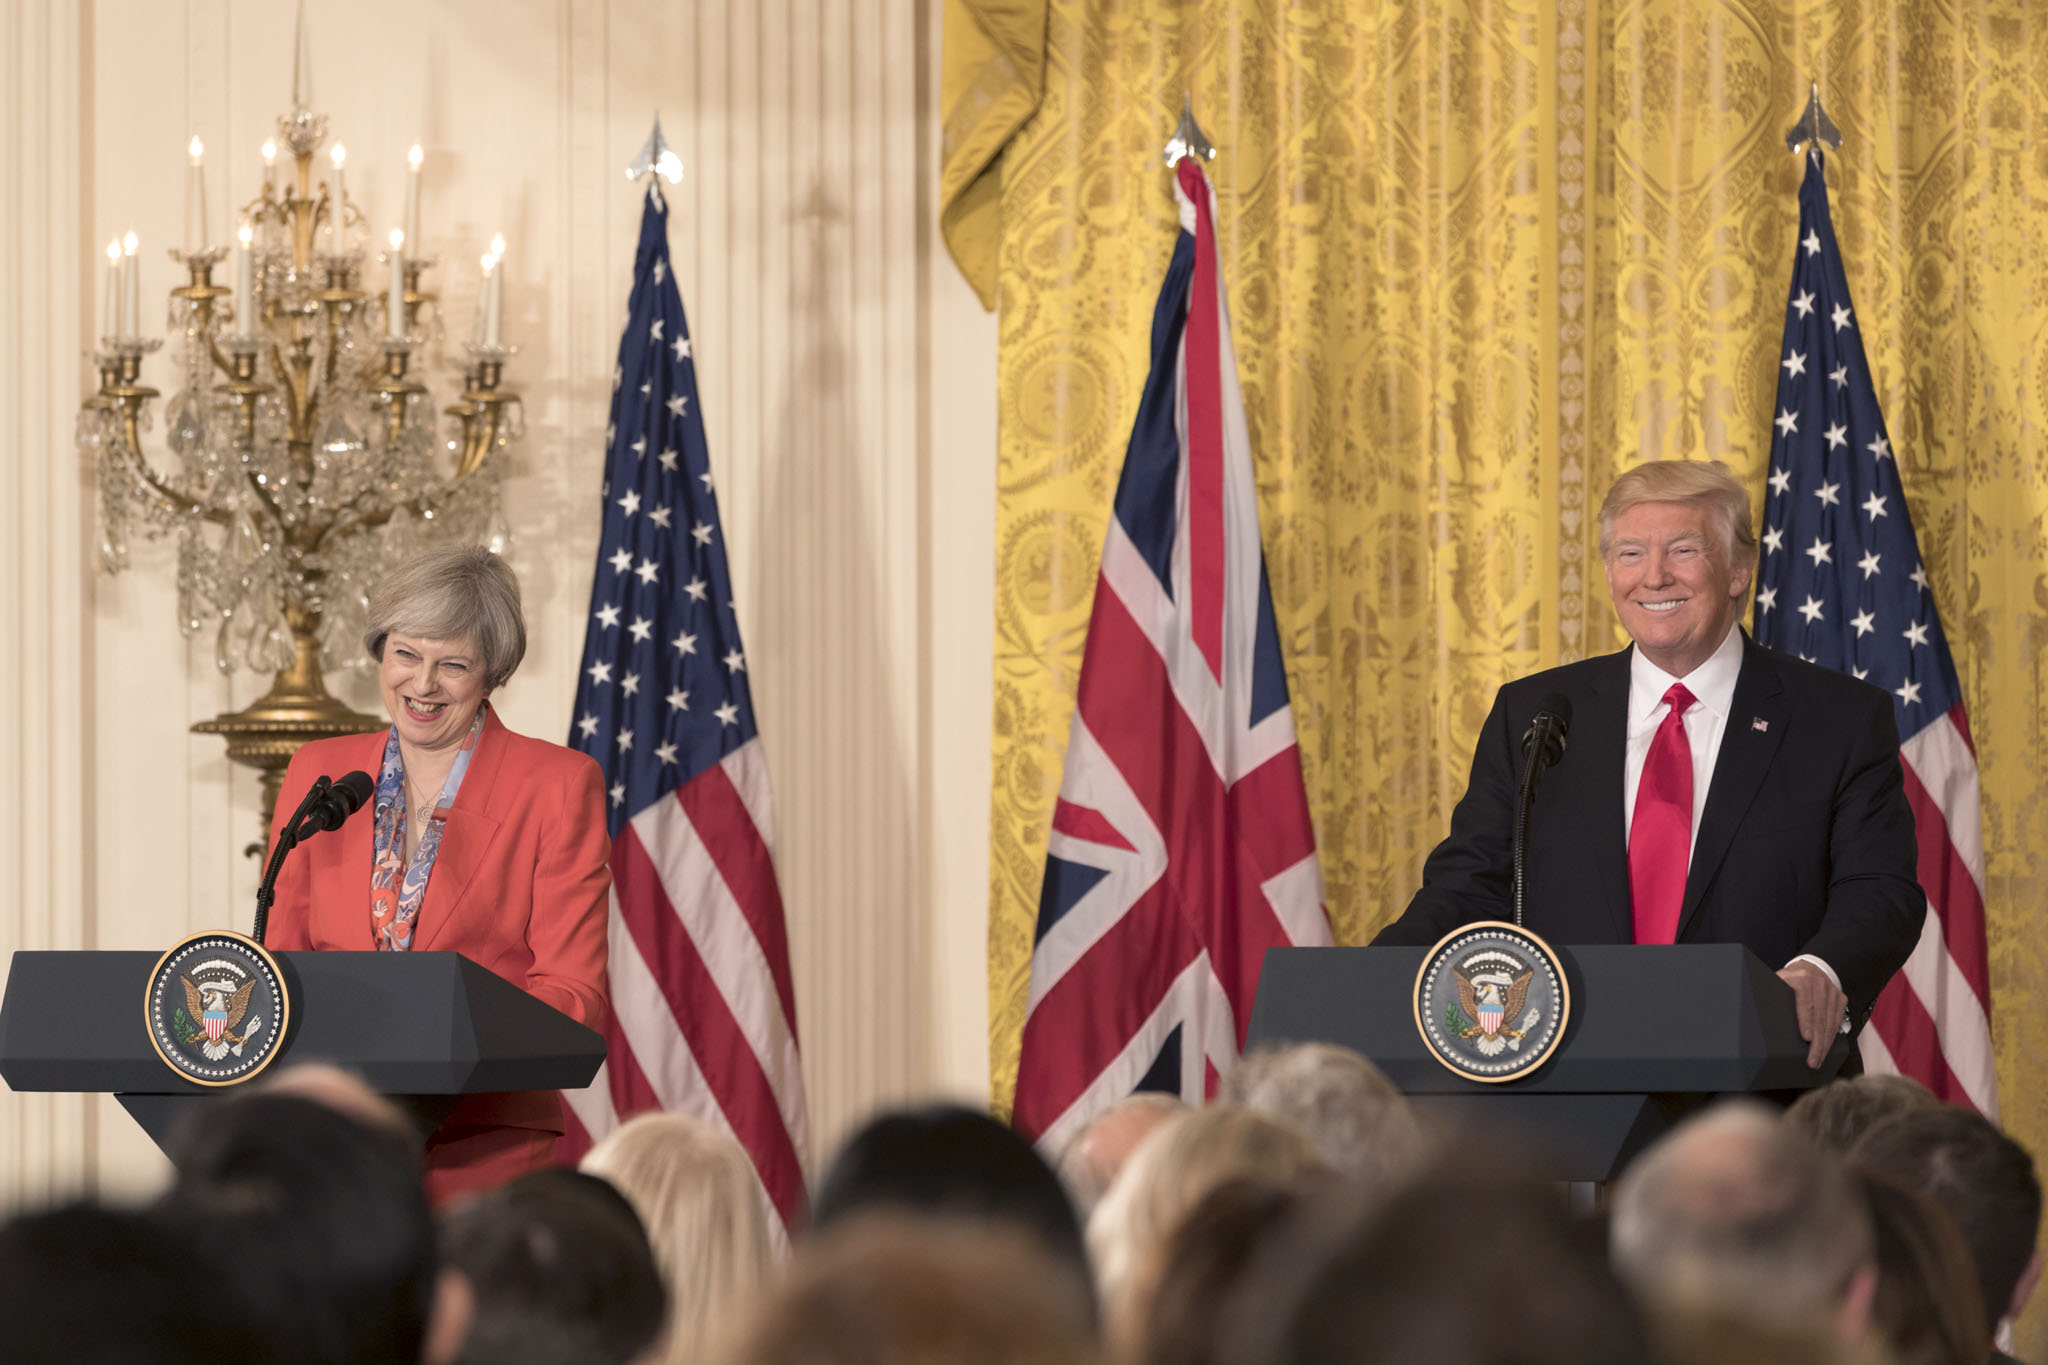 President Donald Trump and British Prime Minister Theresa May appear at a joint press conference, Friday, Jan. 27, 2017, in the East Room of the White House in Washington, D.C. (Official White House Photo by Shealah Craighead)